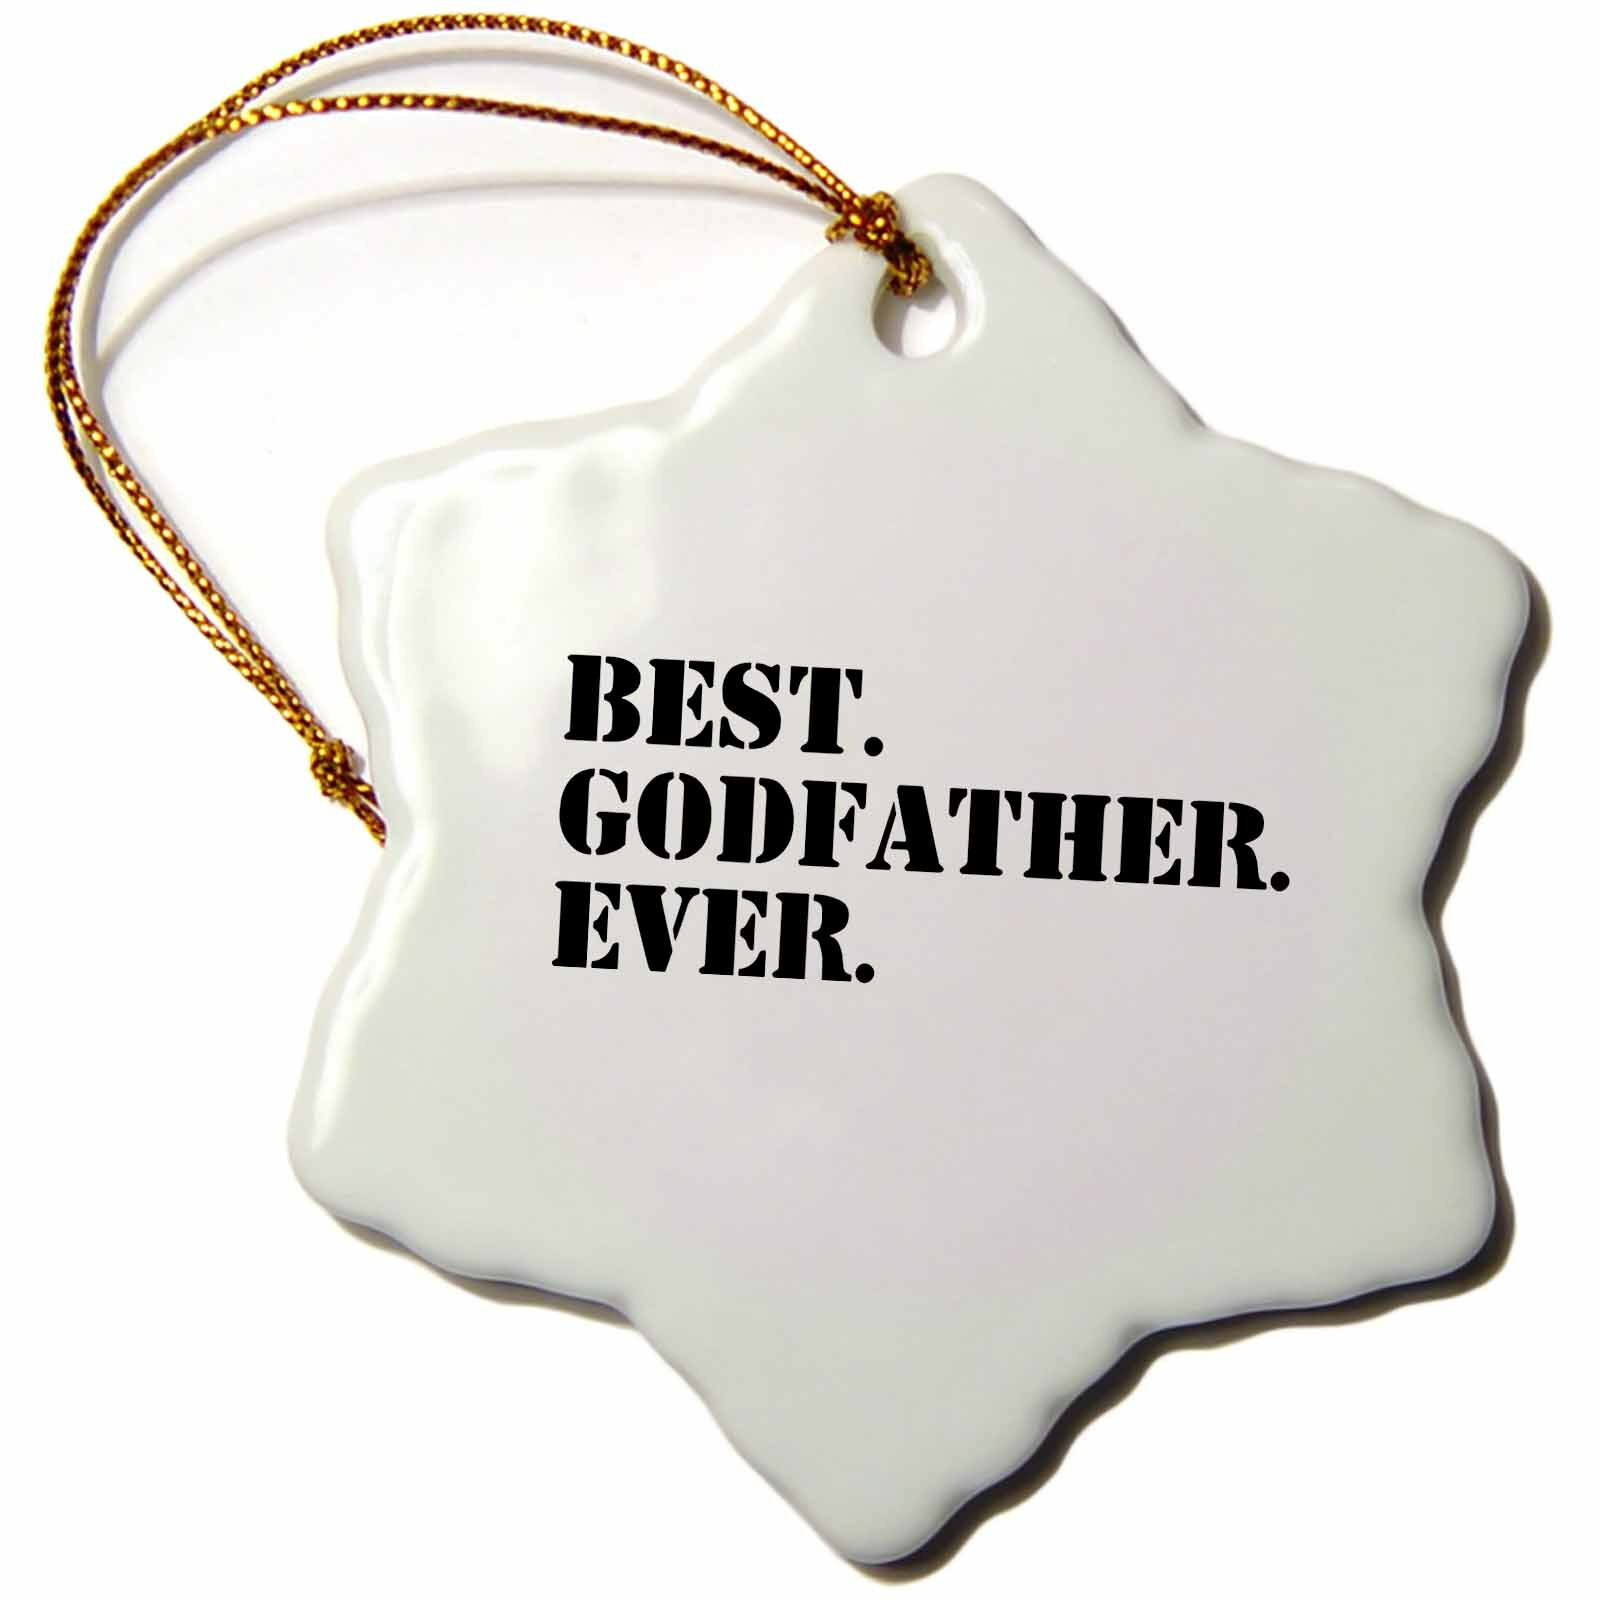 The Holiday Aisle Best Godfather Ever Snowflake Holiday Shaped Ornament Wayfair